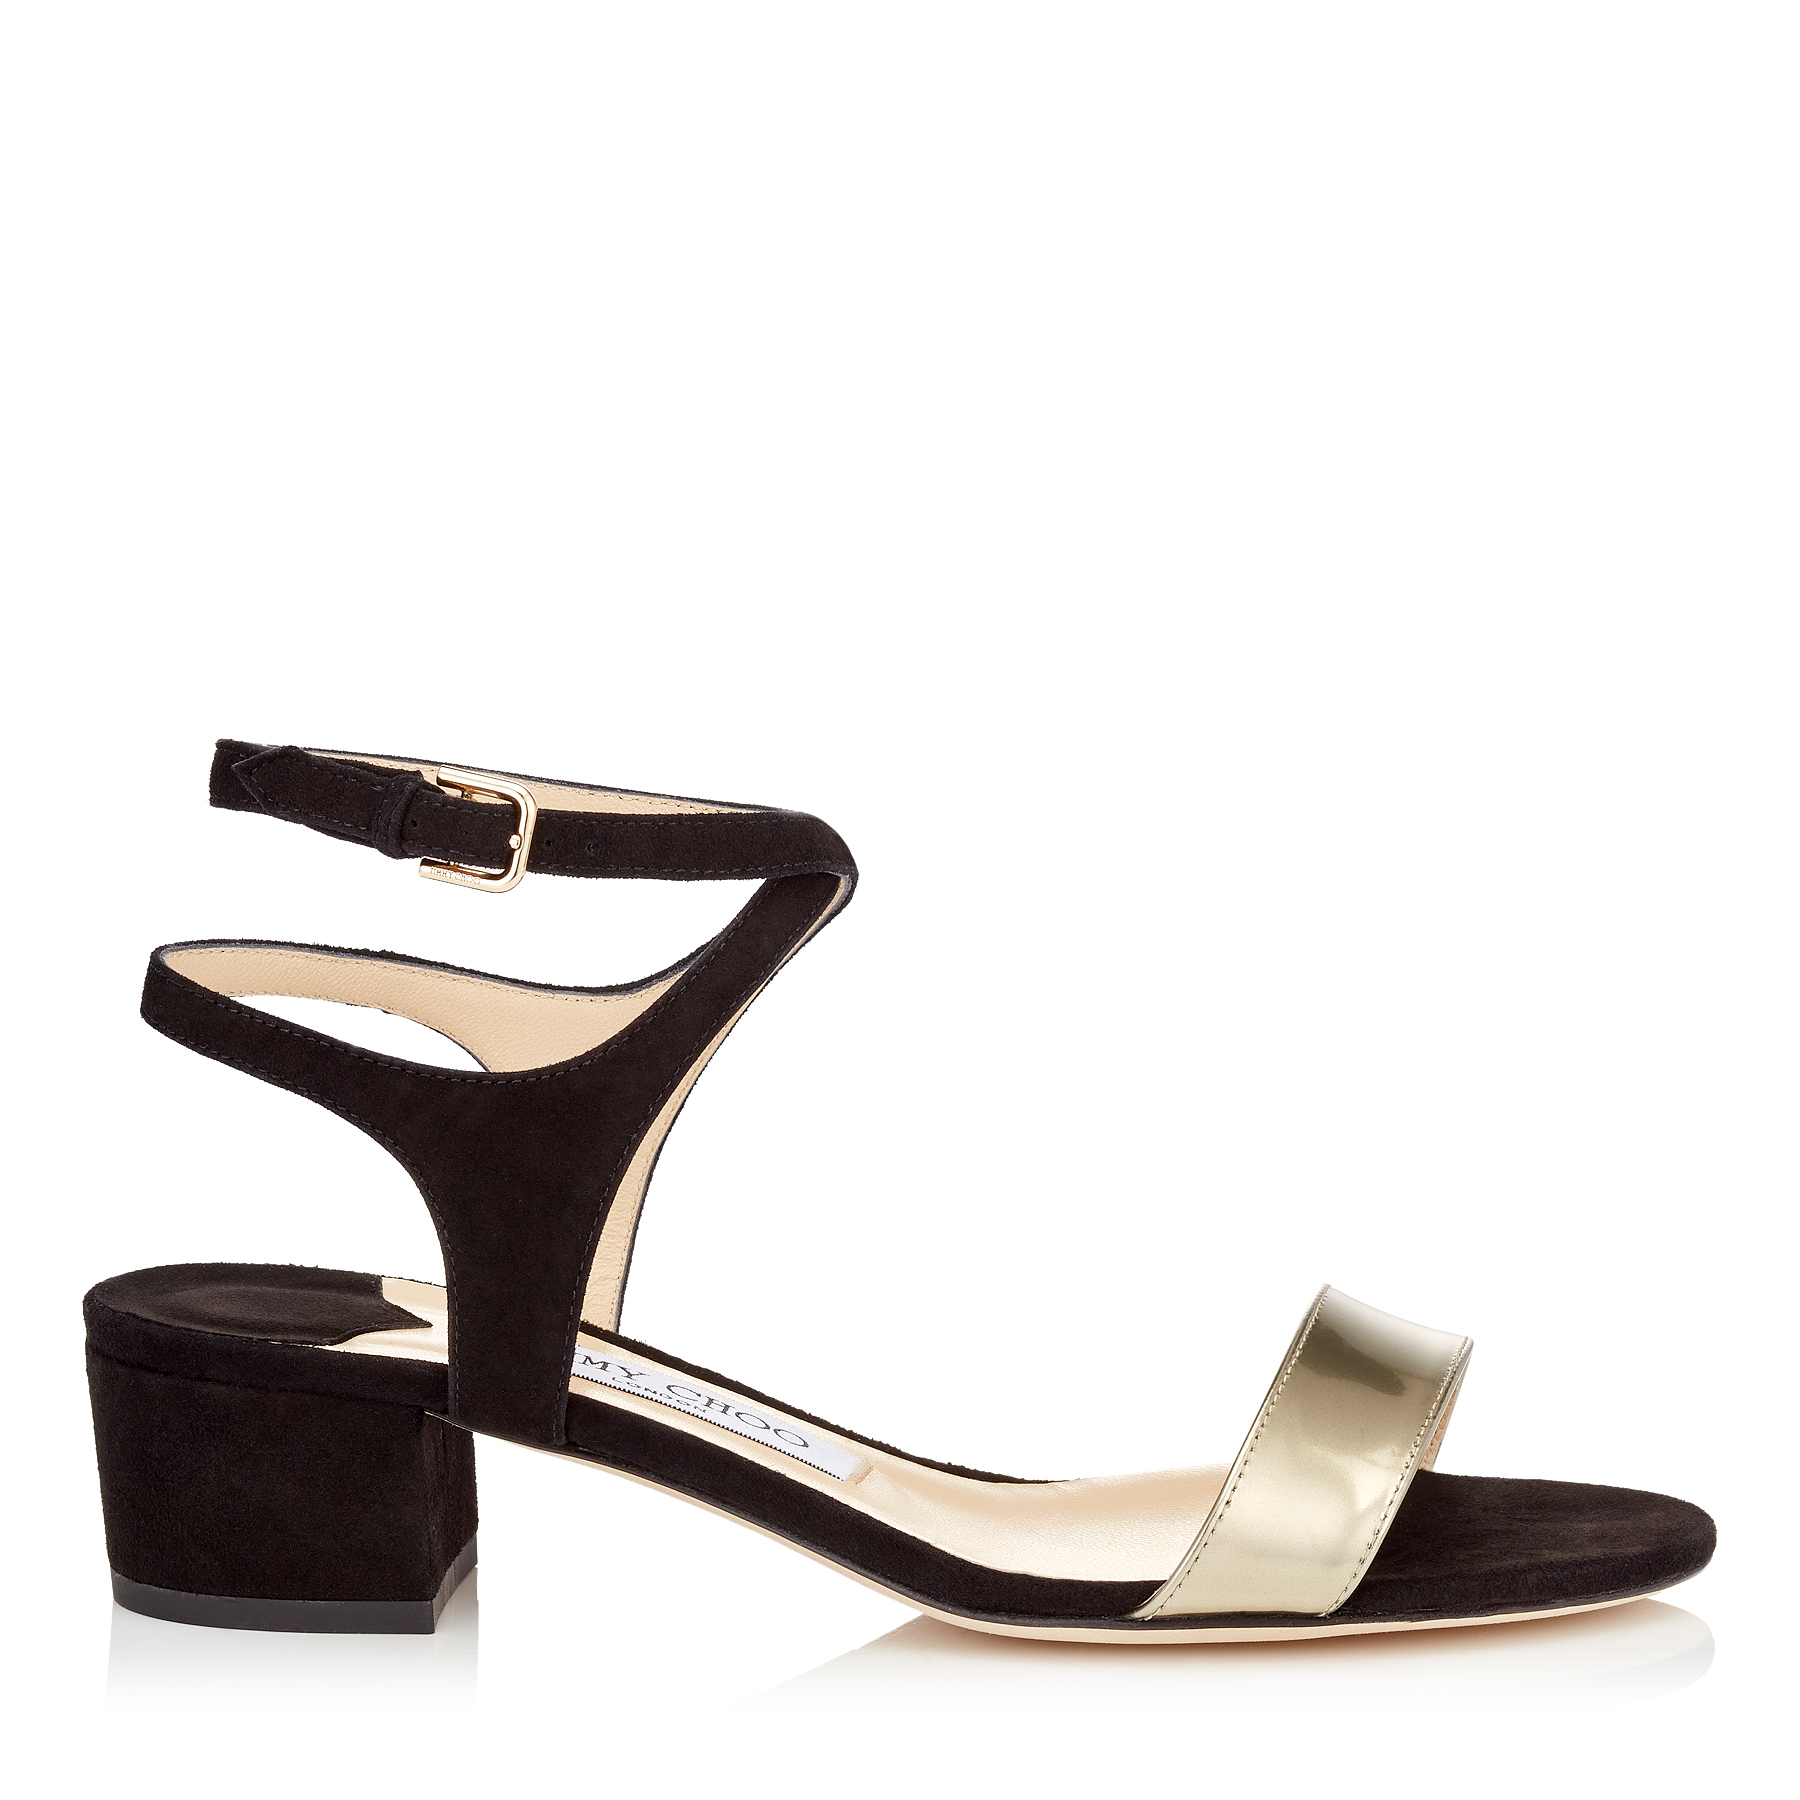 MARINE 35 Black Suede and Dore Liquid Mirror Leather Sandals by Jimmy Choo